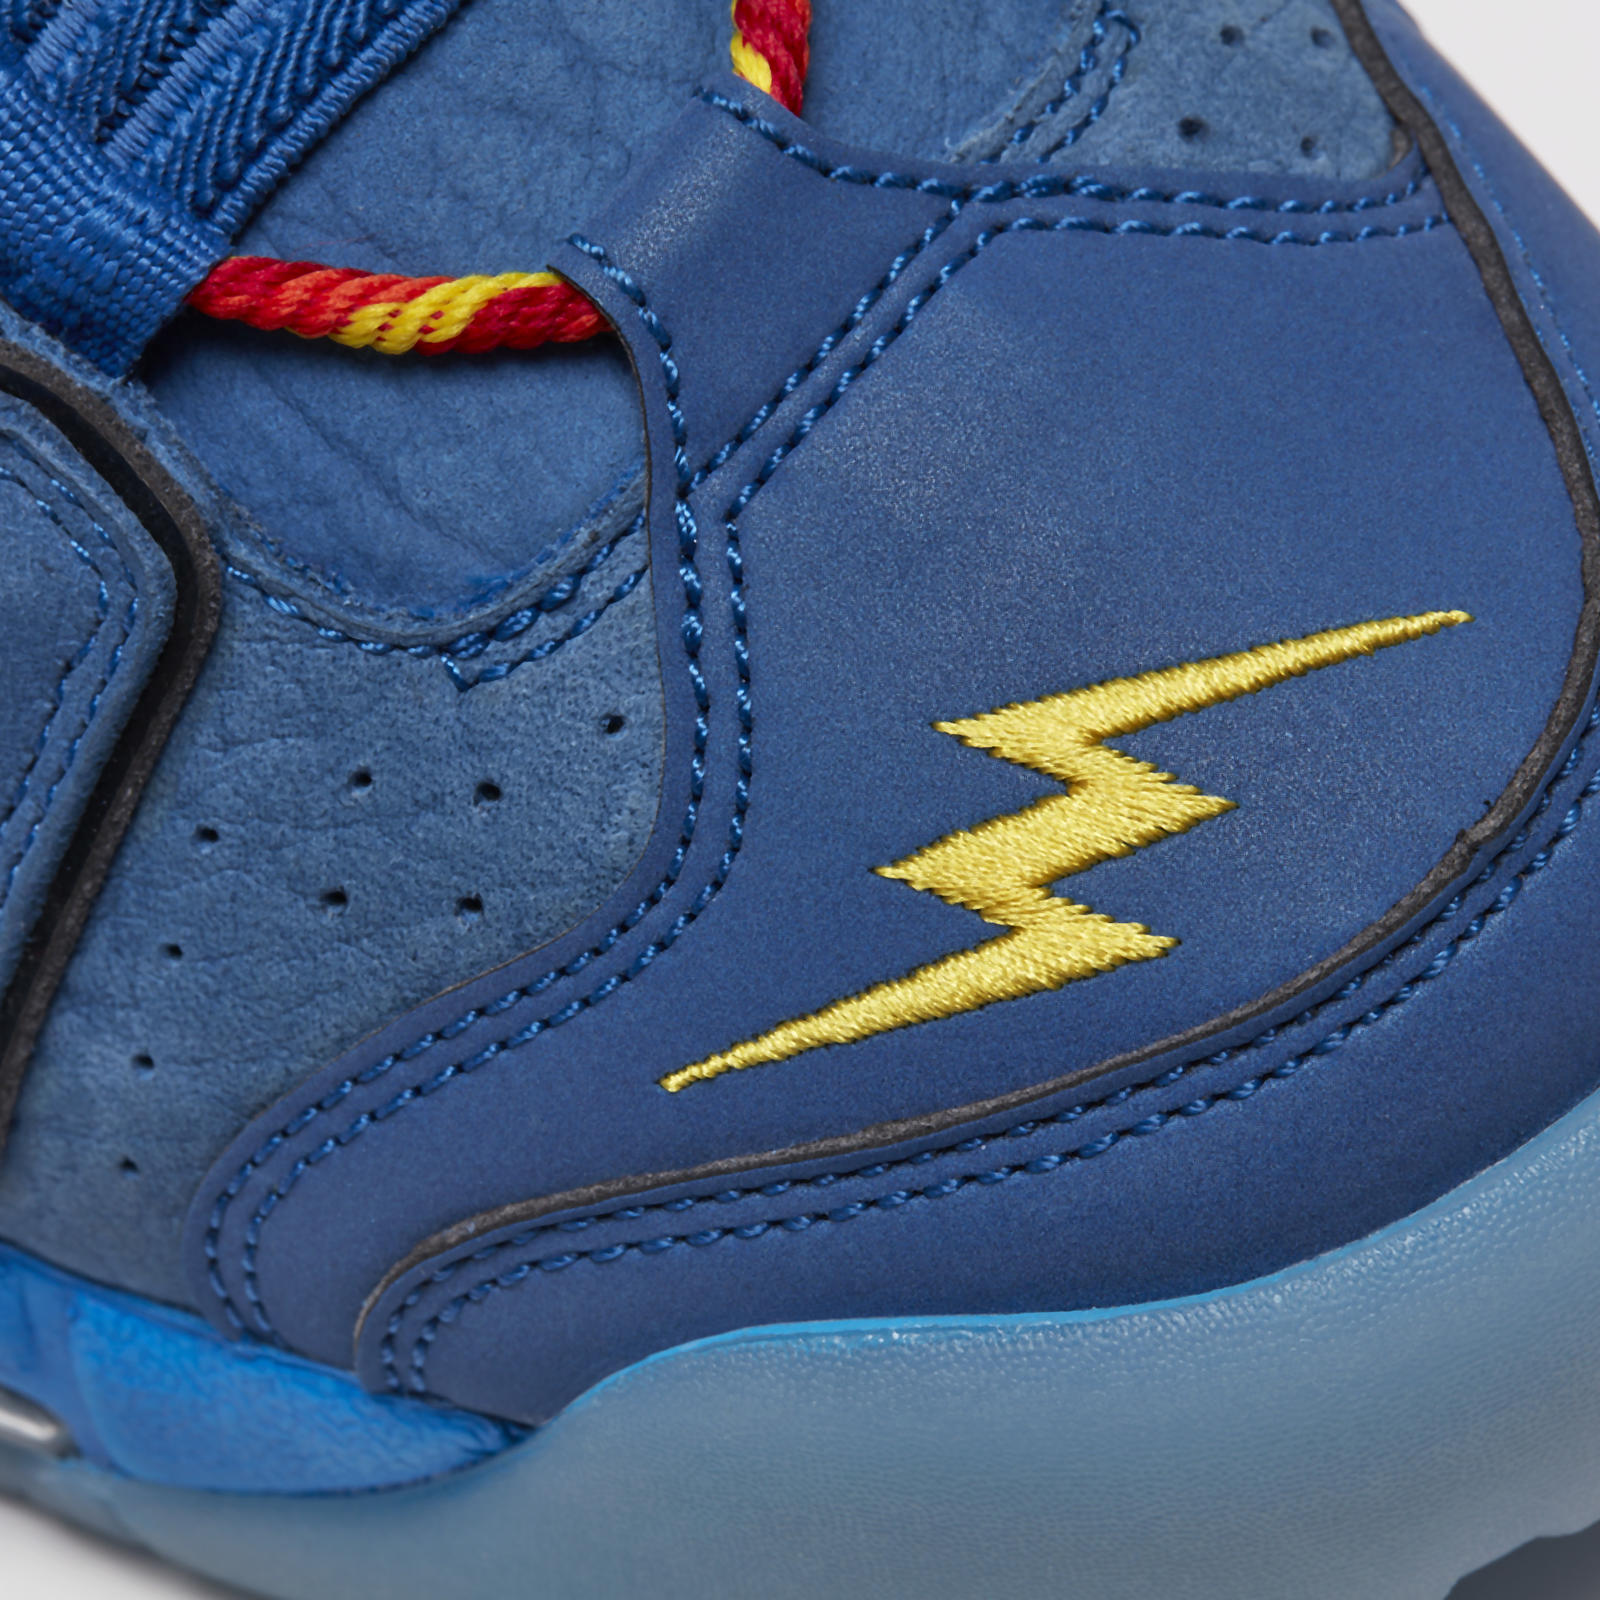 03d01398b1cc What the Doernbecher Freestyle Program Means to the Sneaker Community 11